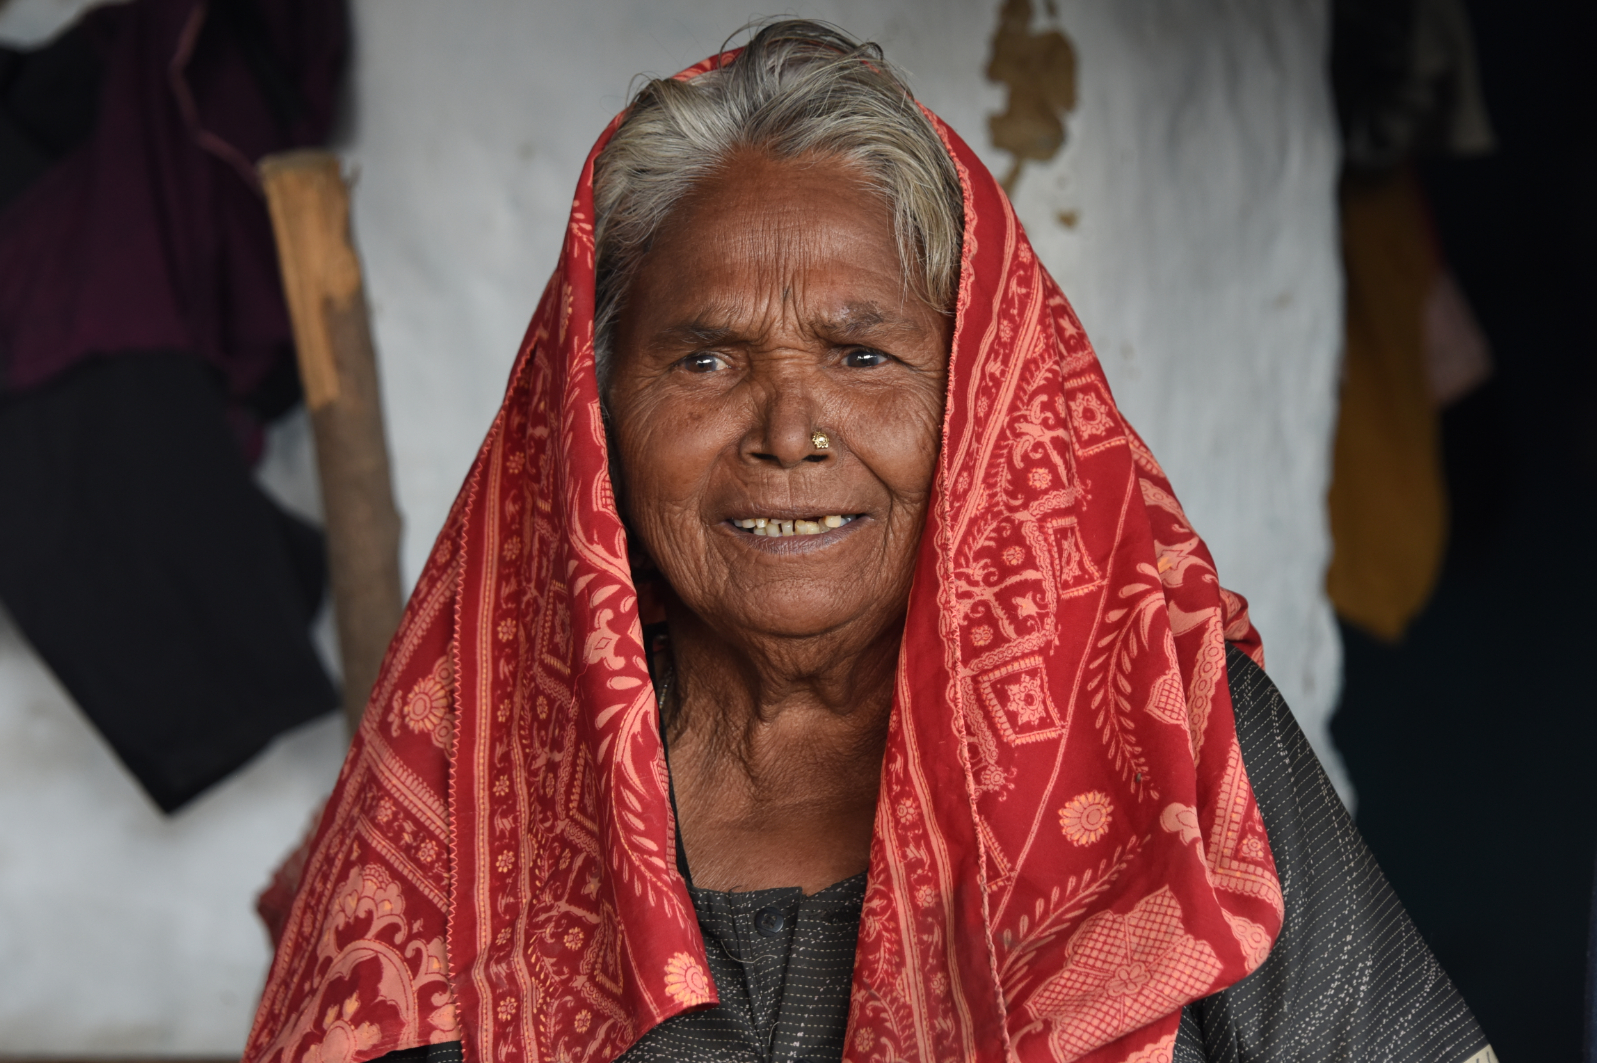 An Indian old woman